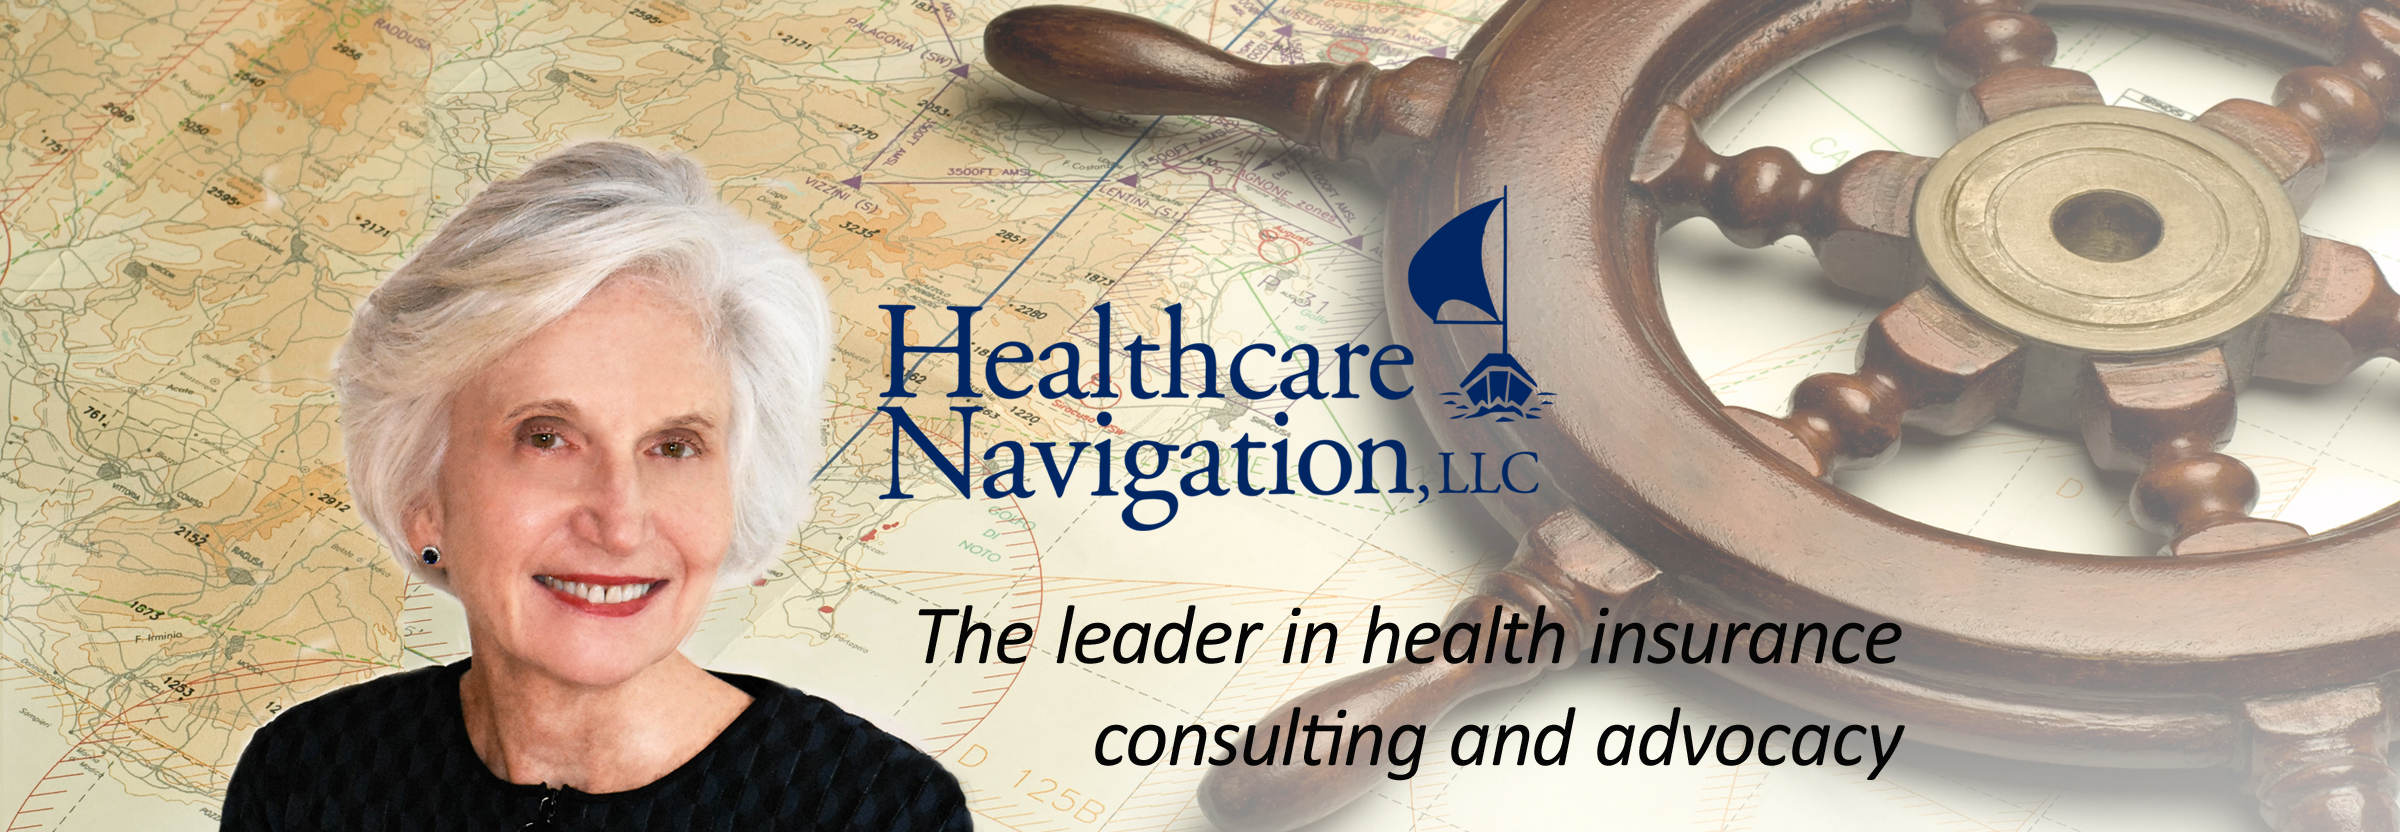 Healthcare Navigation LLC - Health Insurance Consulting and advocacy